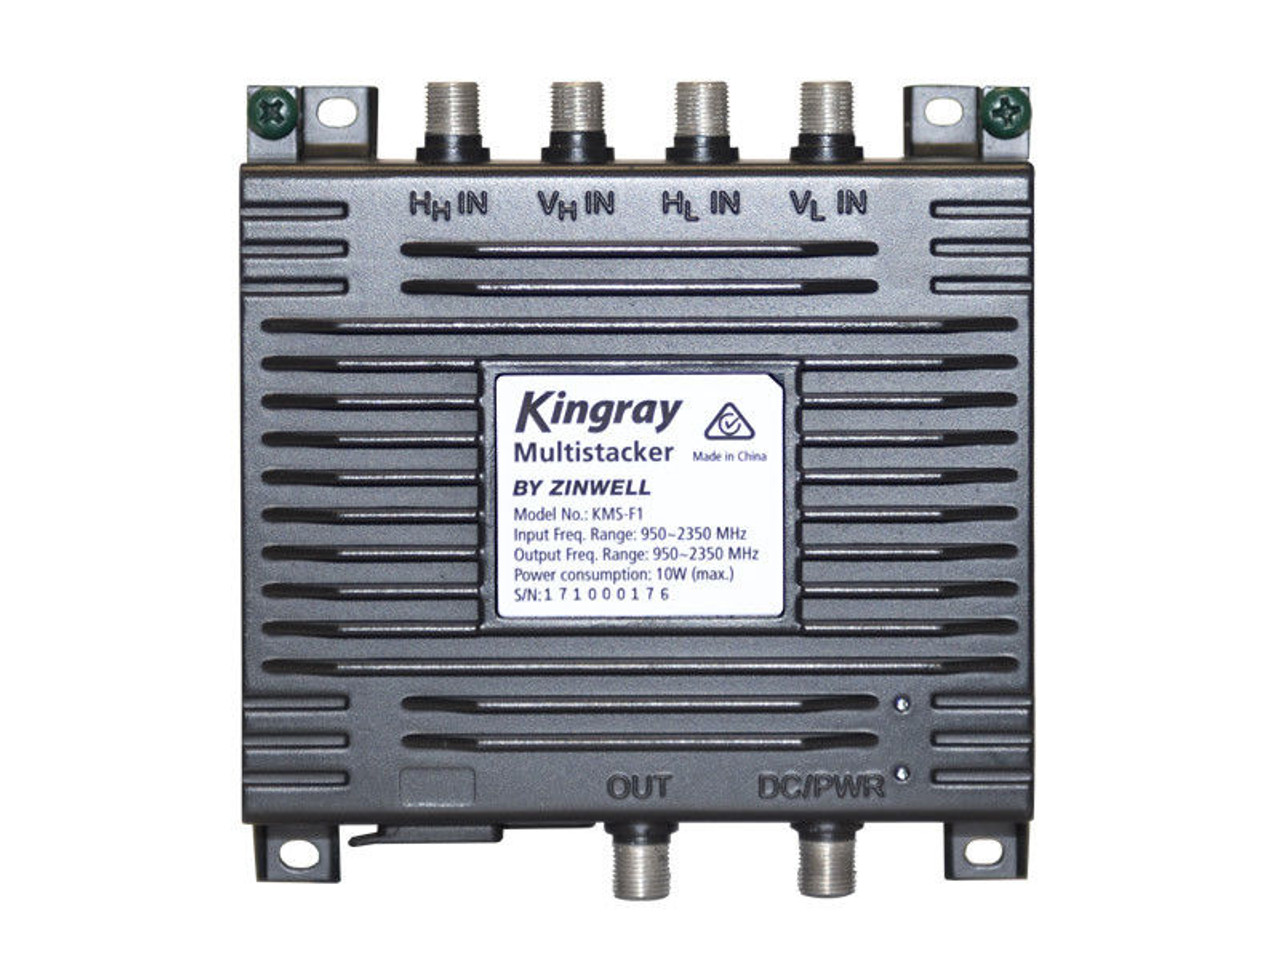 Kingray KMS-F1 Single Wire Satellite Multistacker - Pay TV Approved